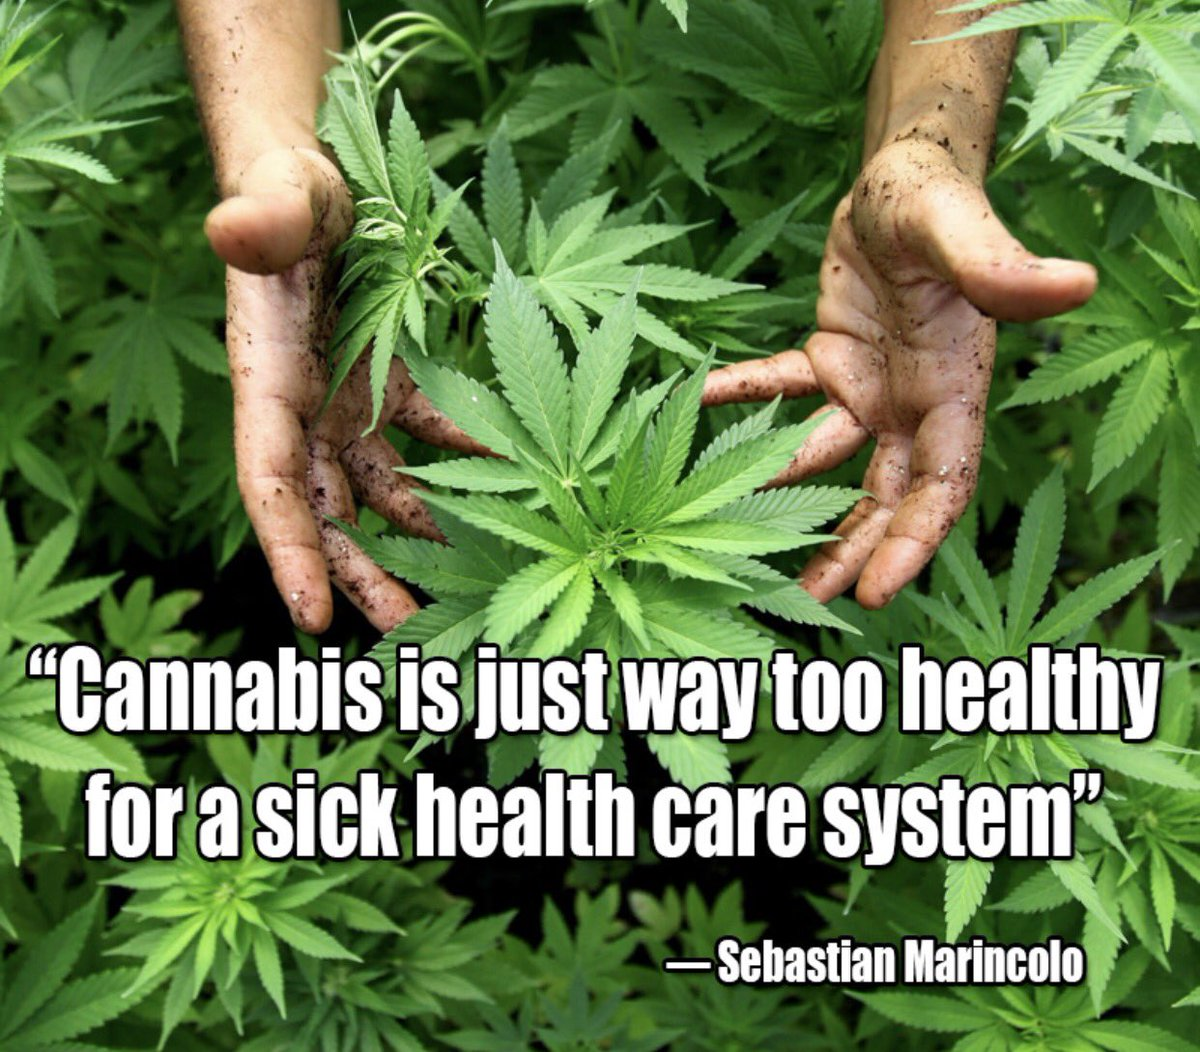 And it&#39;s #Cannabis that is starting to heal that system &amp; everyone out there affected by it! #marijuana #educateyourself #science #THC #CBD <br>http://pic.twitter.com/pXjyrHoYaI